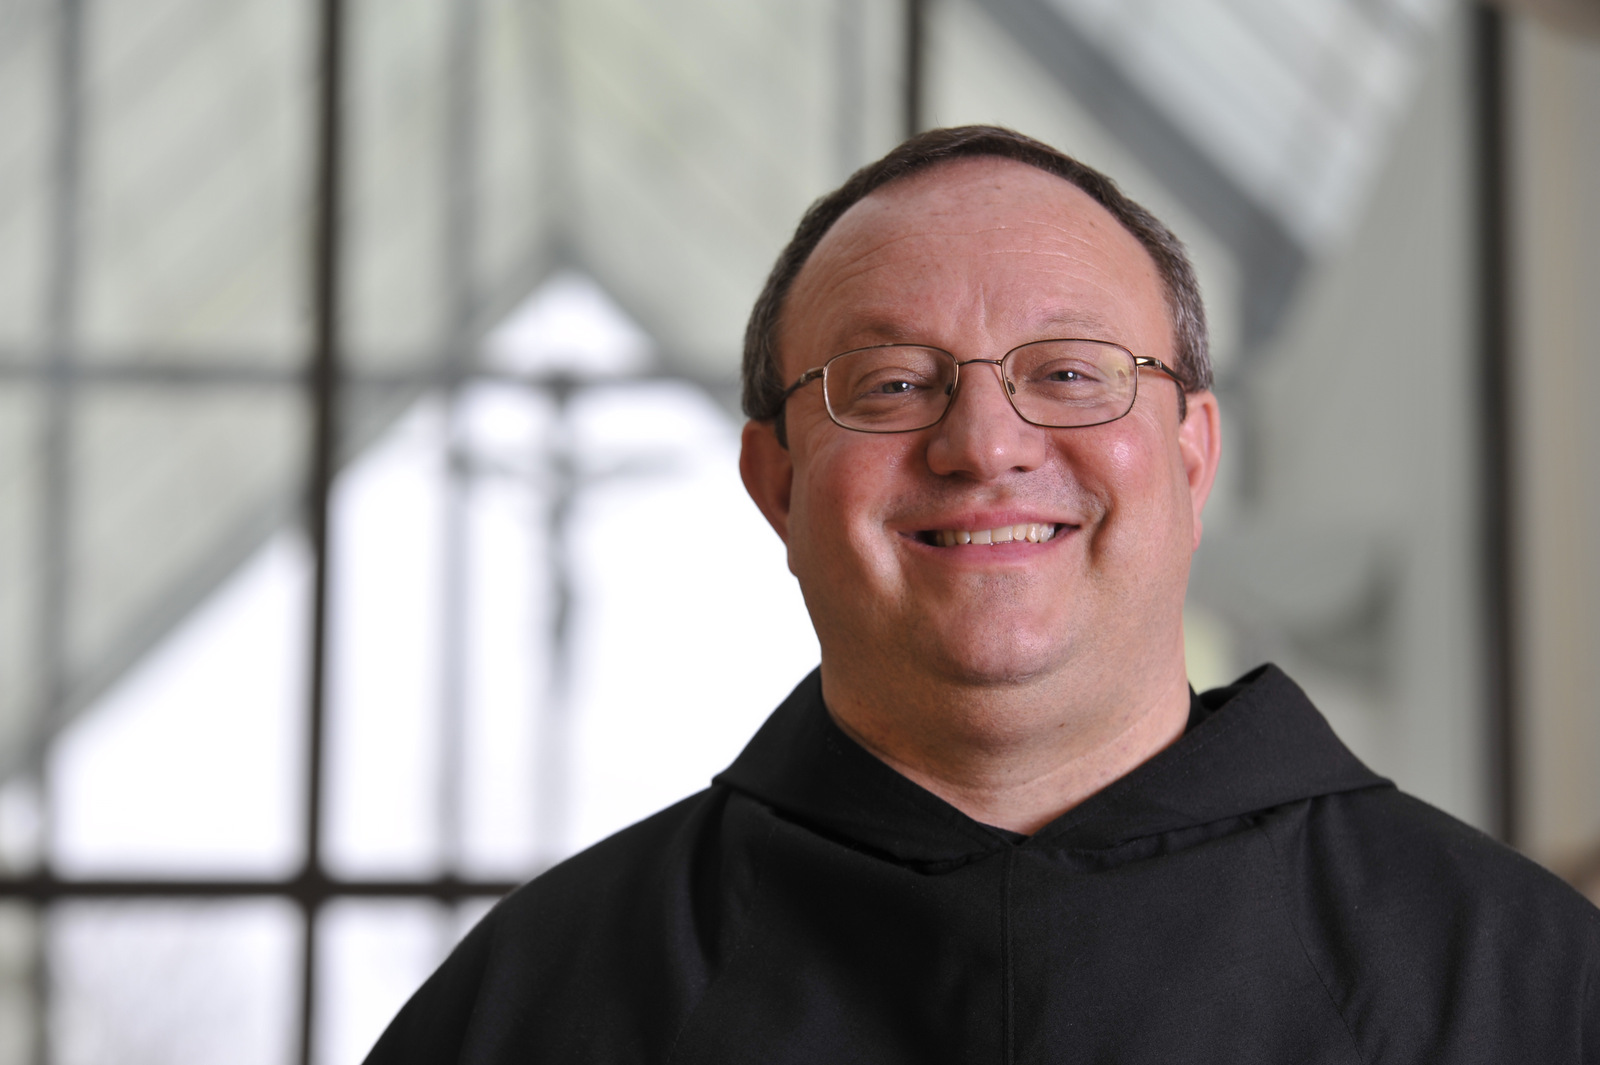 The Very Rev. Bernard C. Scianna, O.S.A., Ph.D., Offers his 2016 State of the Province Address